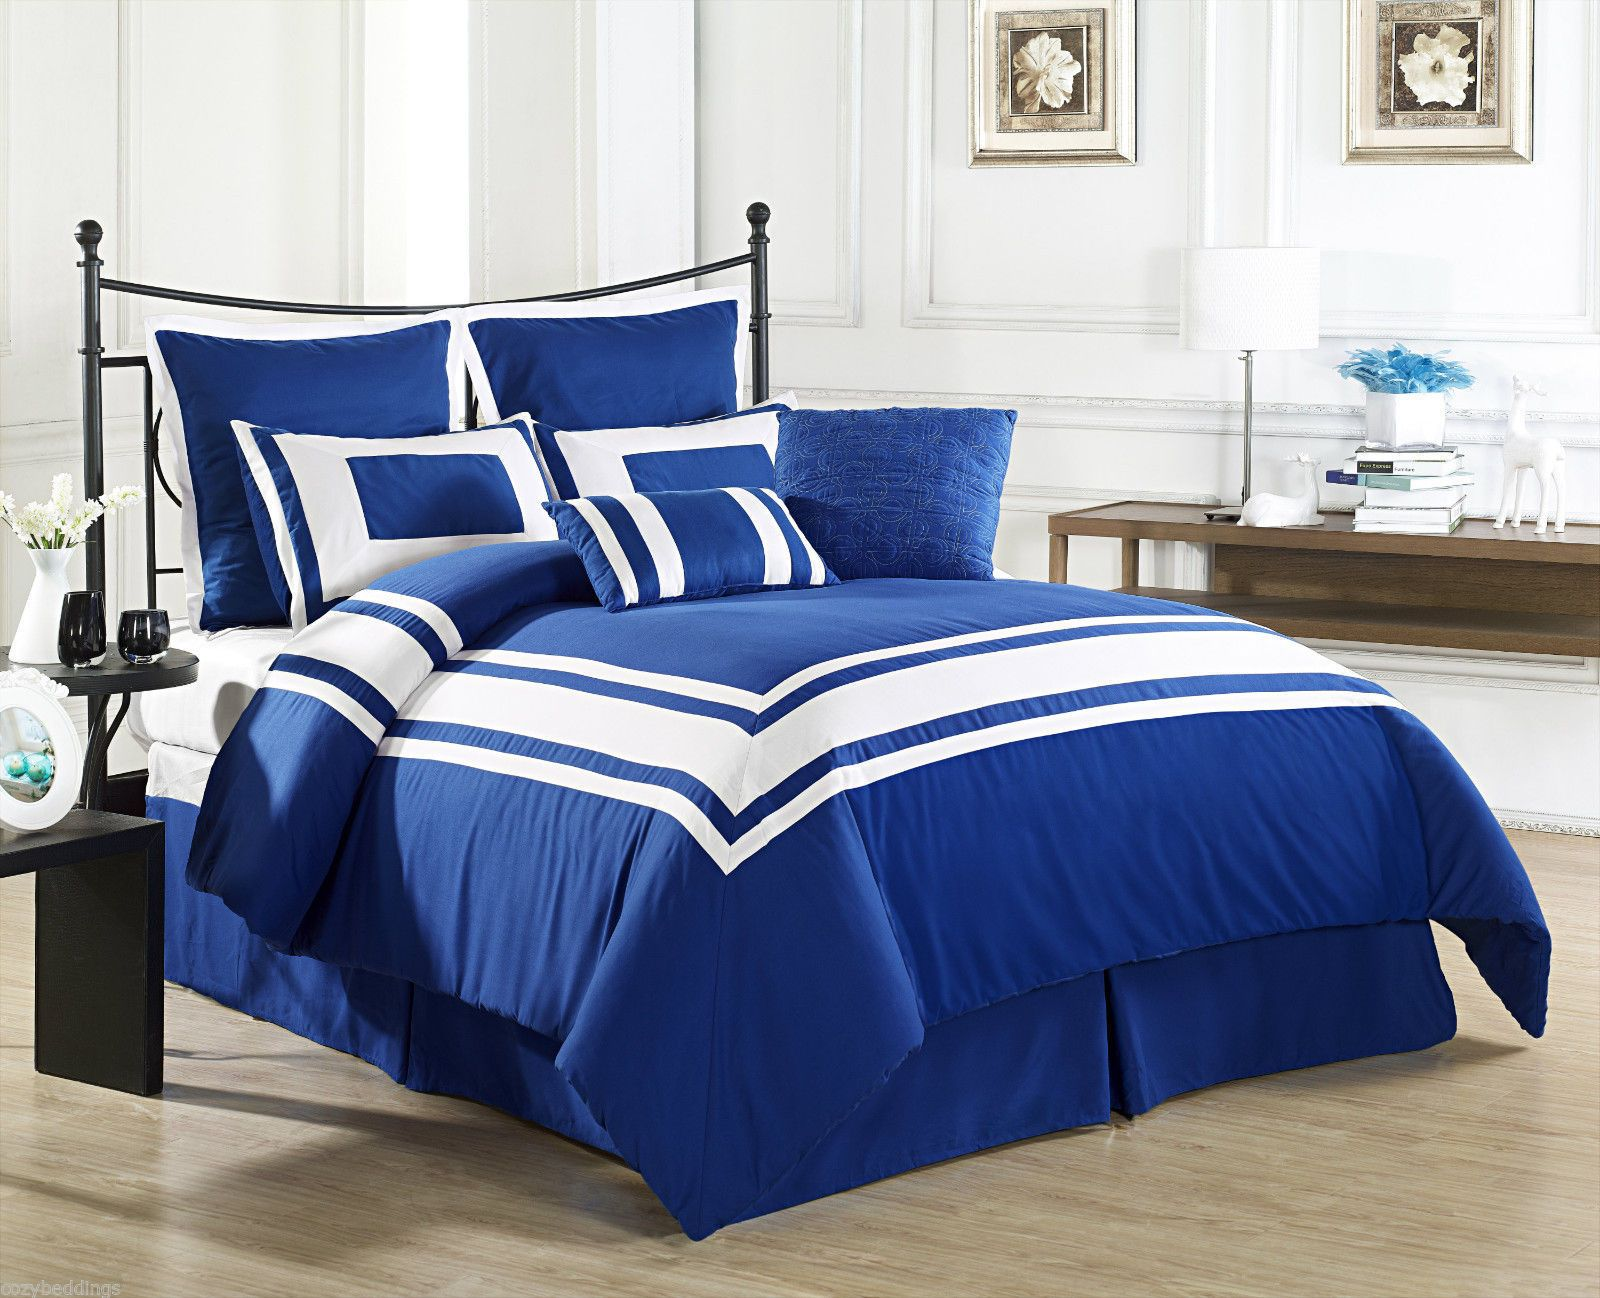 Bedroom Sets Queen Size Beds lux decor royal blue - queen size bed 8-piece comforter set white